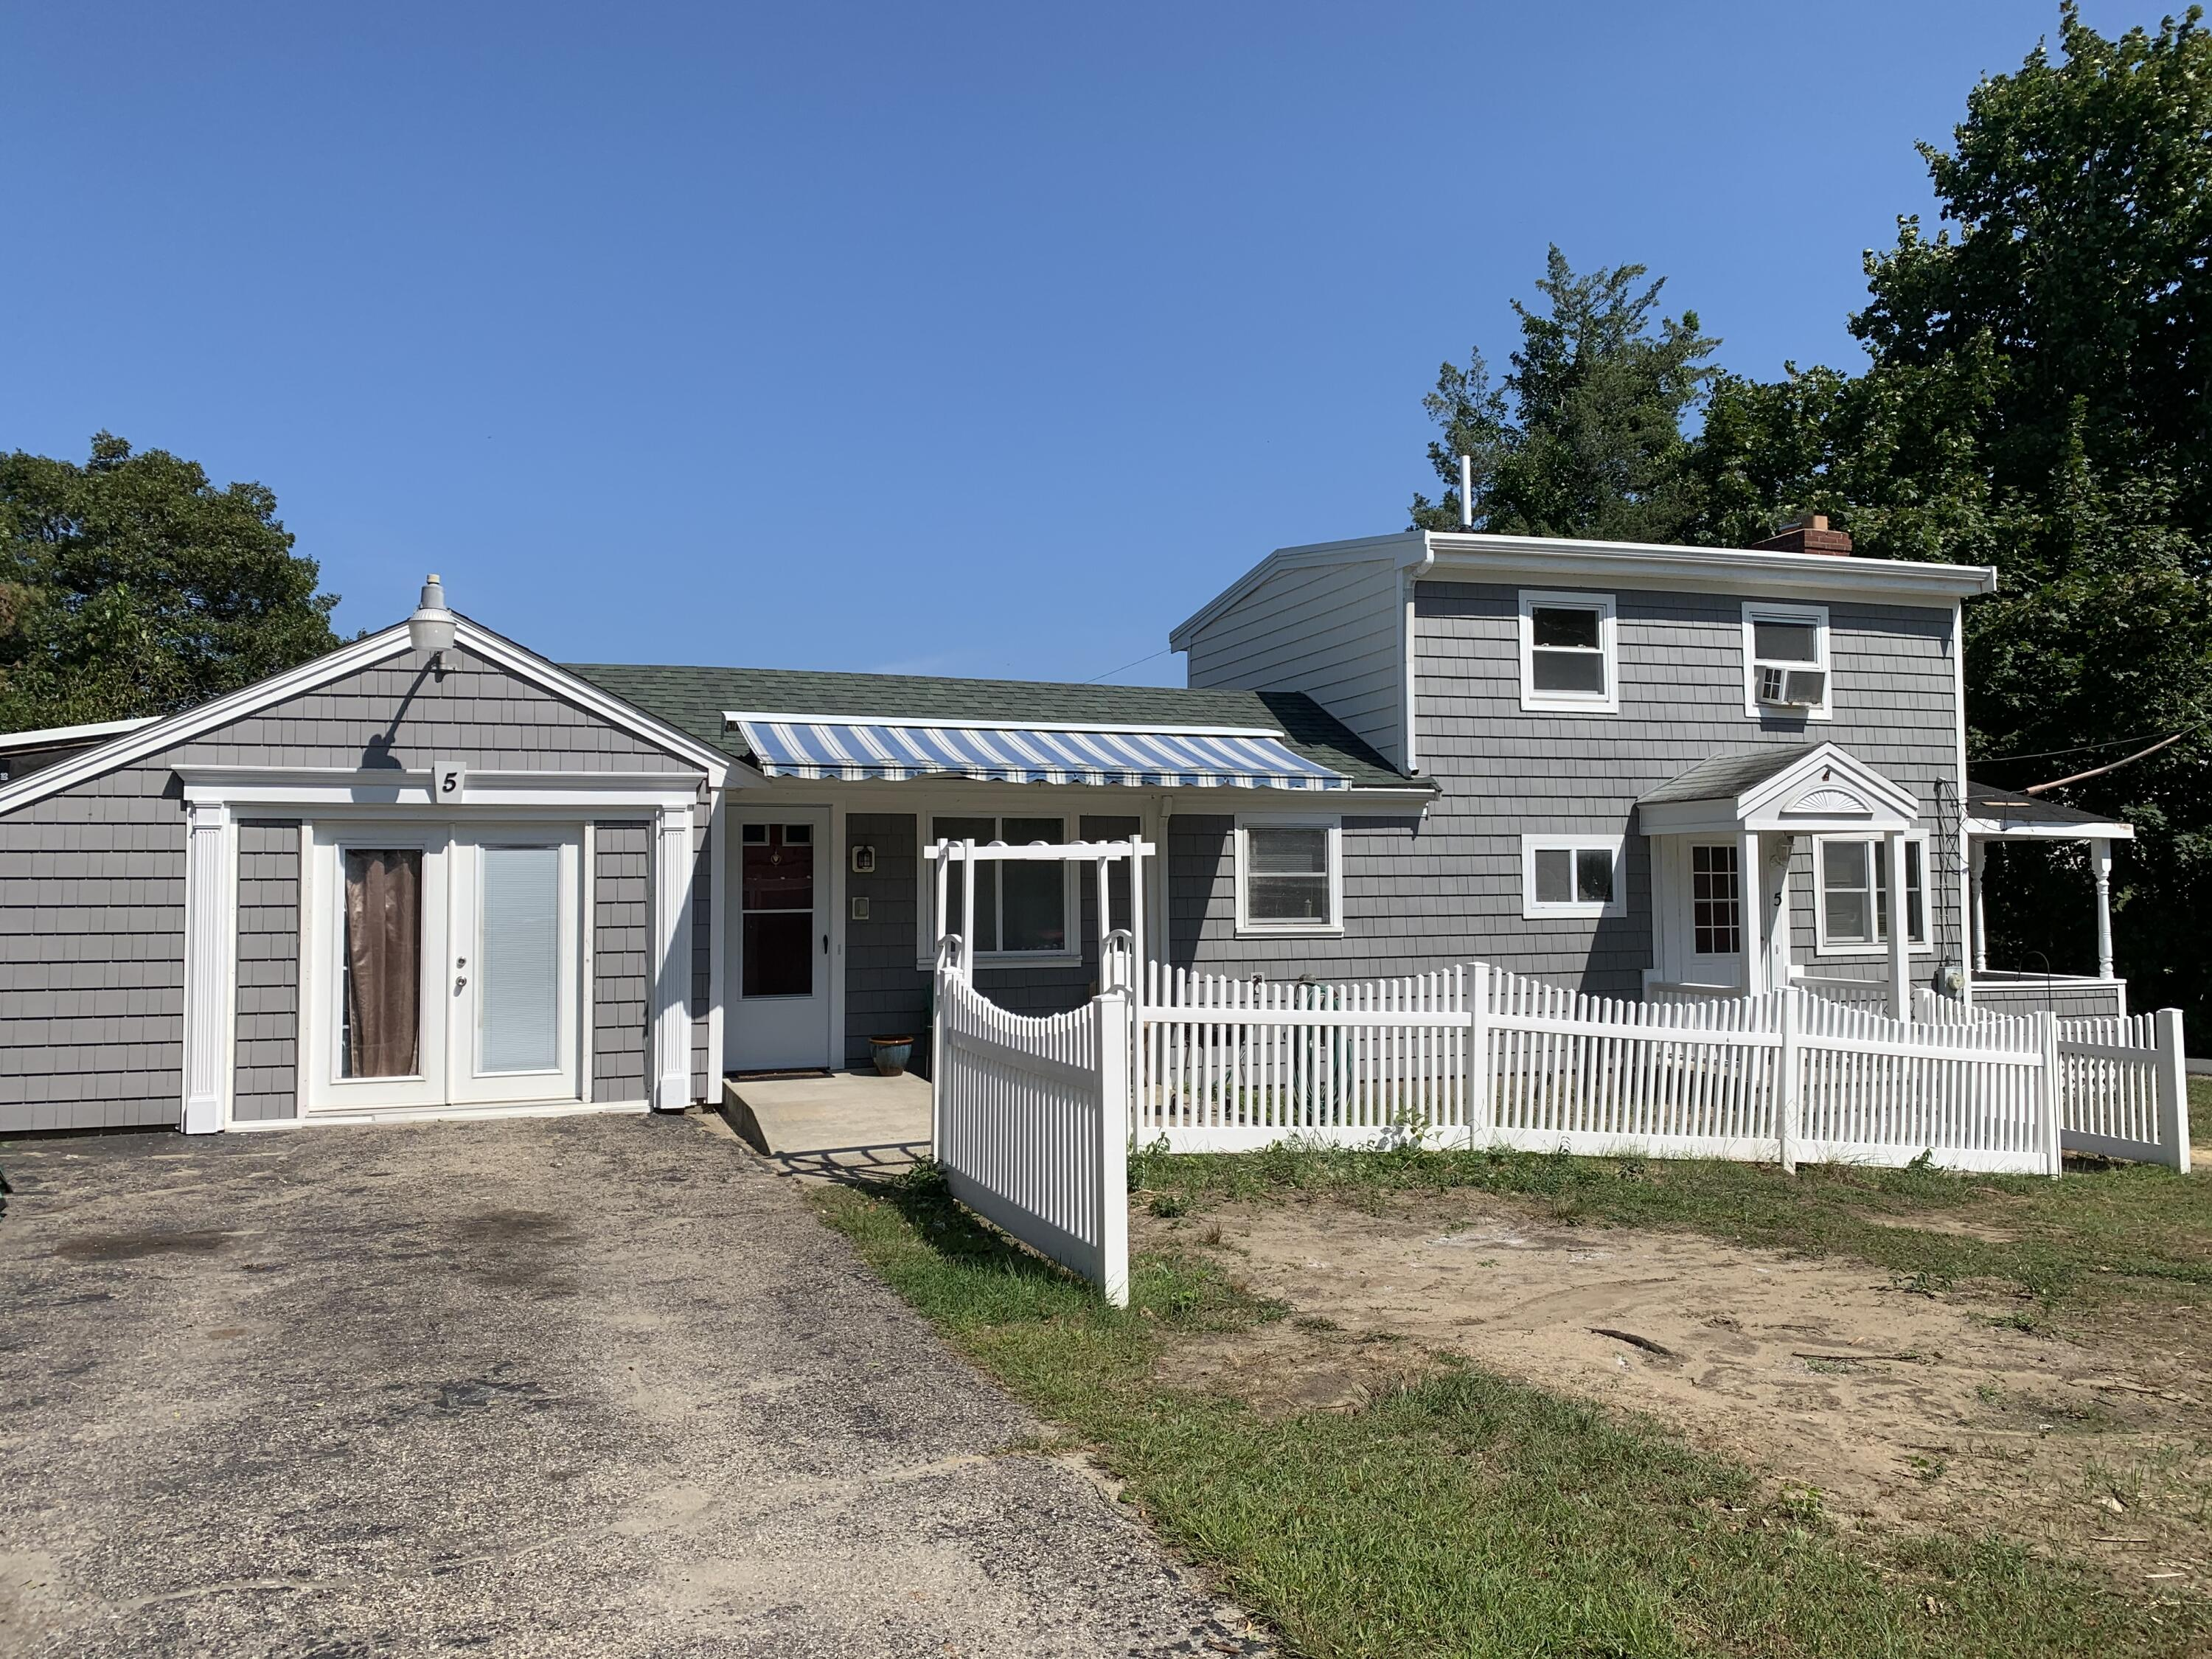 5 Kens Way, West Yarmouth MA, 02673 details